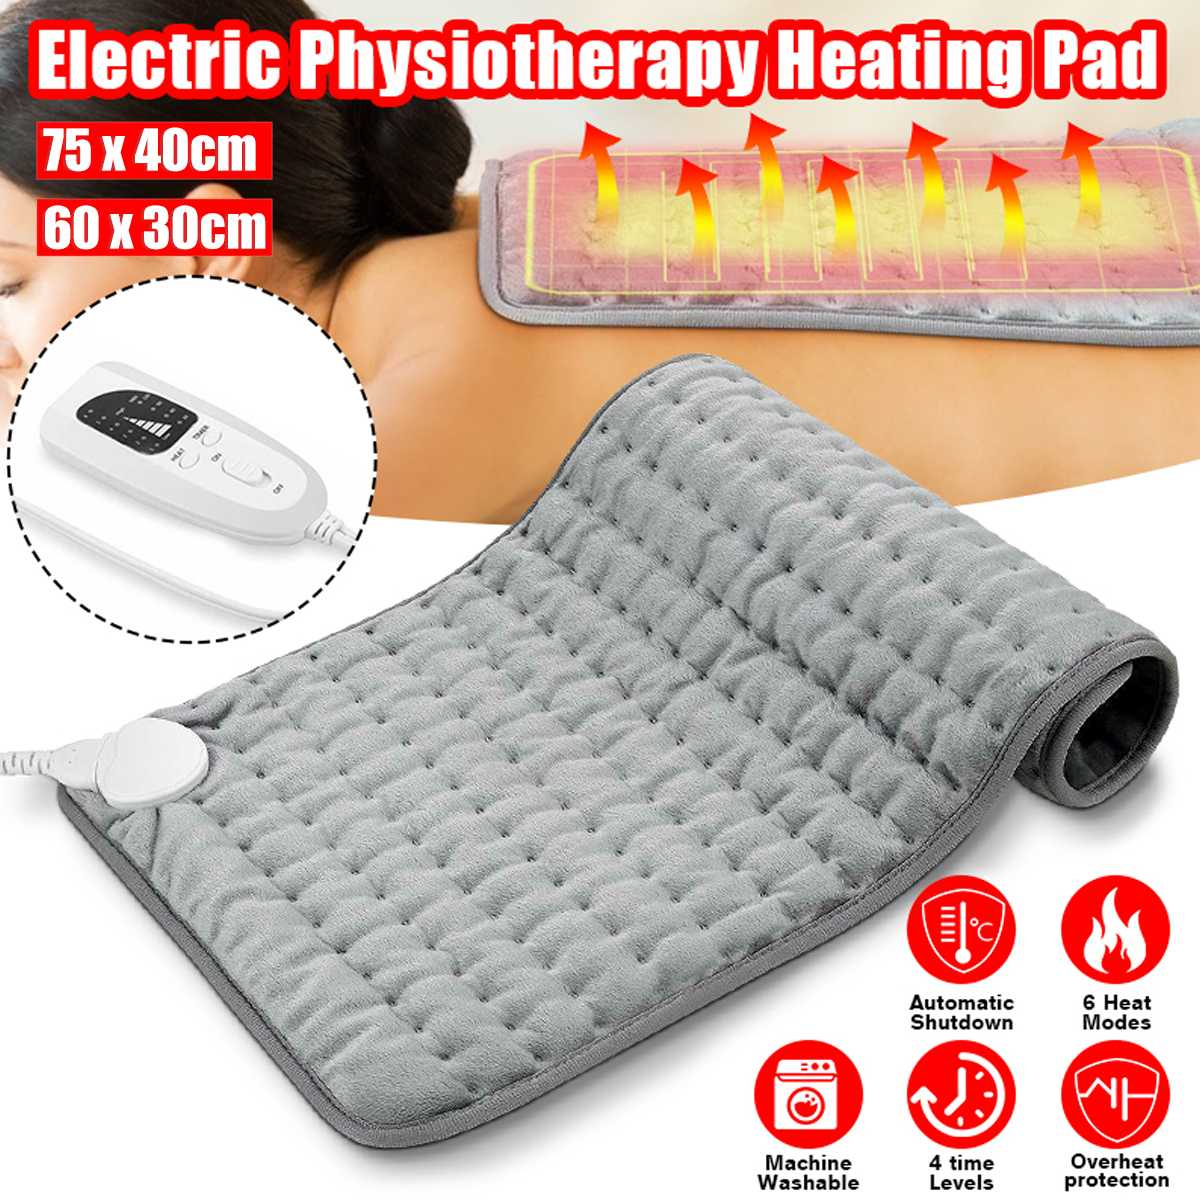 6 Level 110~240V 120W Electric Heating Pad Timer For Shoulder Neck Back Spine Leg Pain Relief Winter Warmer 75x40cm 60x30cm